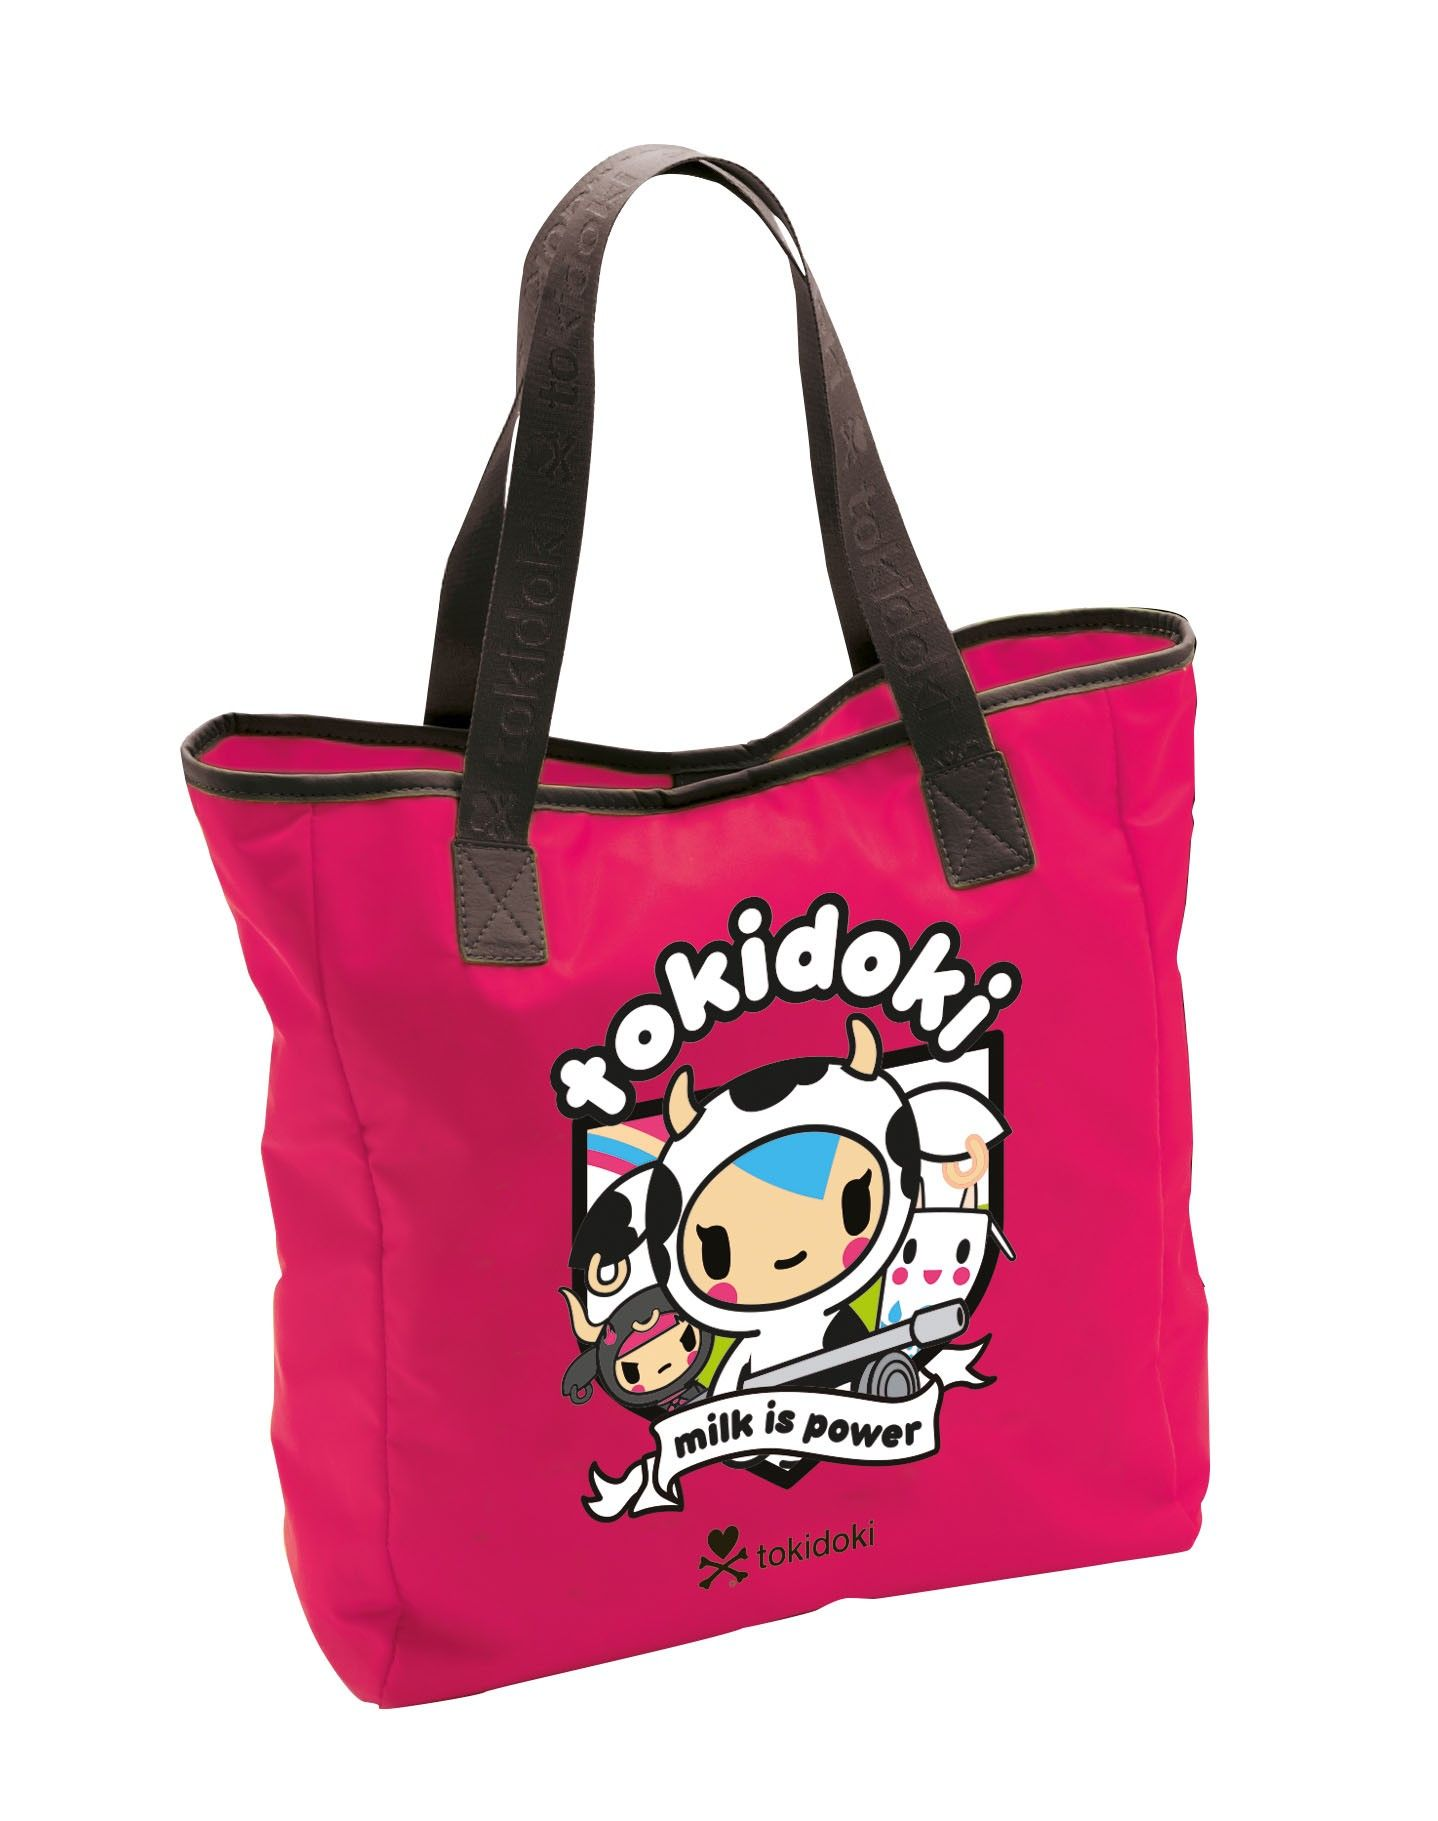 b3a1a681ef hello kitty purses for kids - Google Search